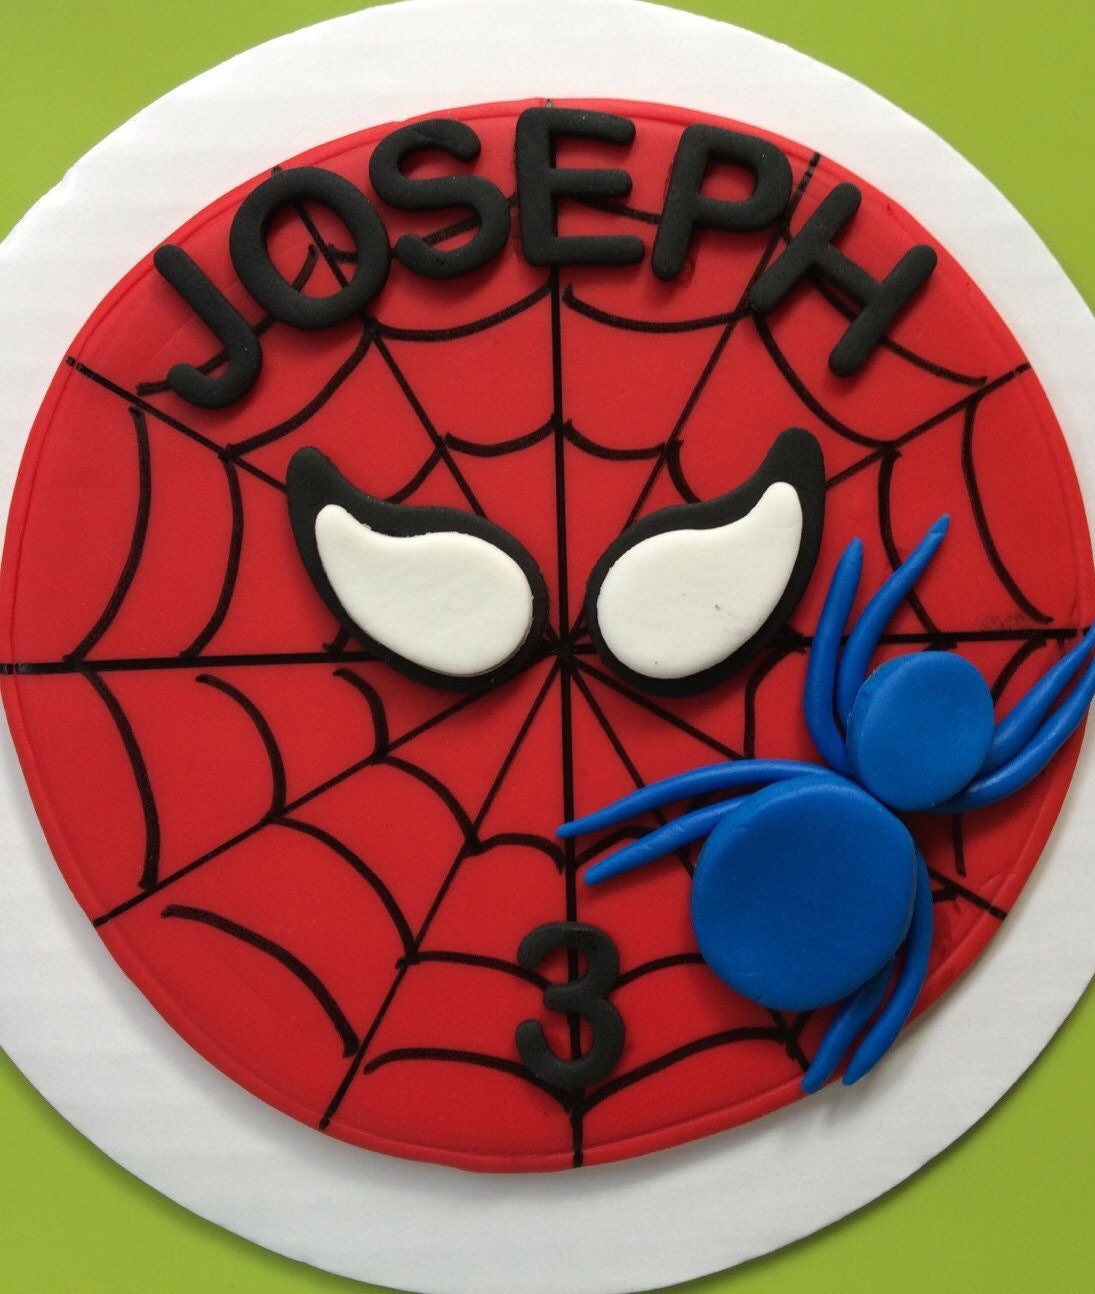 Spiderman Cake Decorations Uk : spiderman cake topper 6 edible fondant cake topper